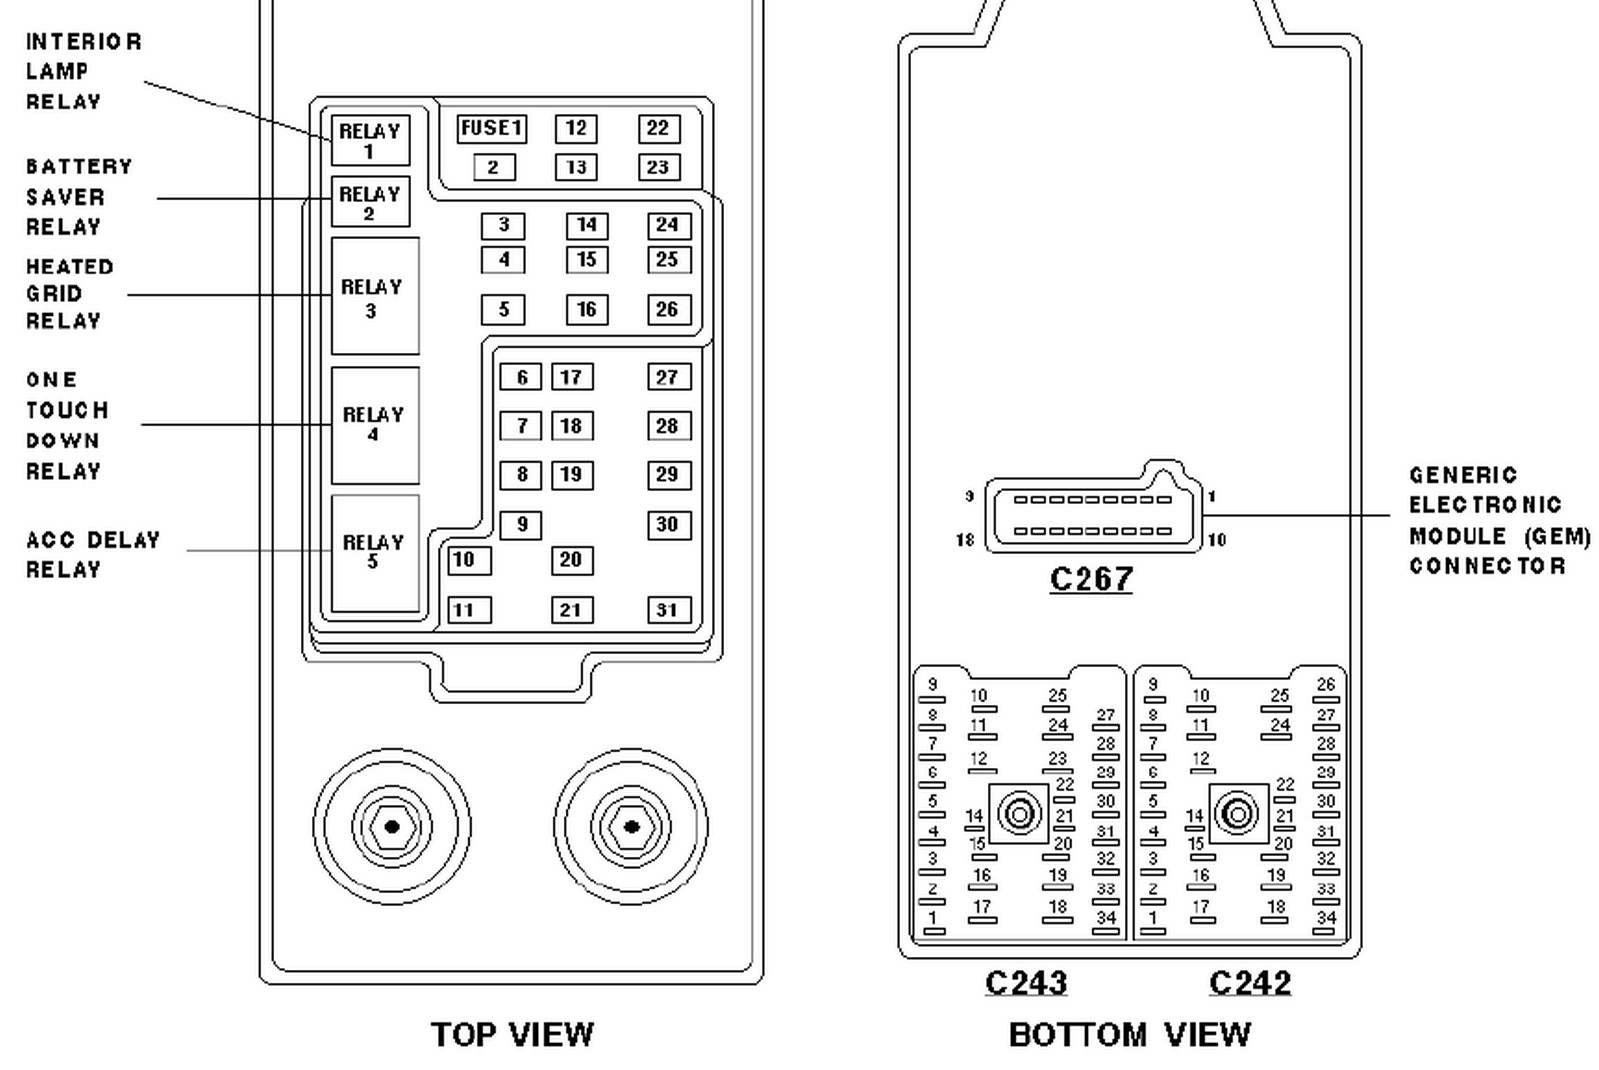 Ford F 750 Fuse Box Diagram Wiring Library 1998 150 Dash 1997 Expedition Image Details Truck